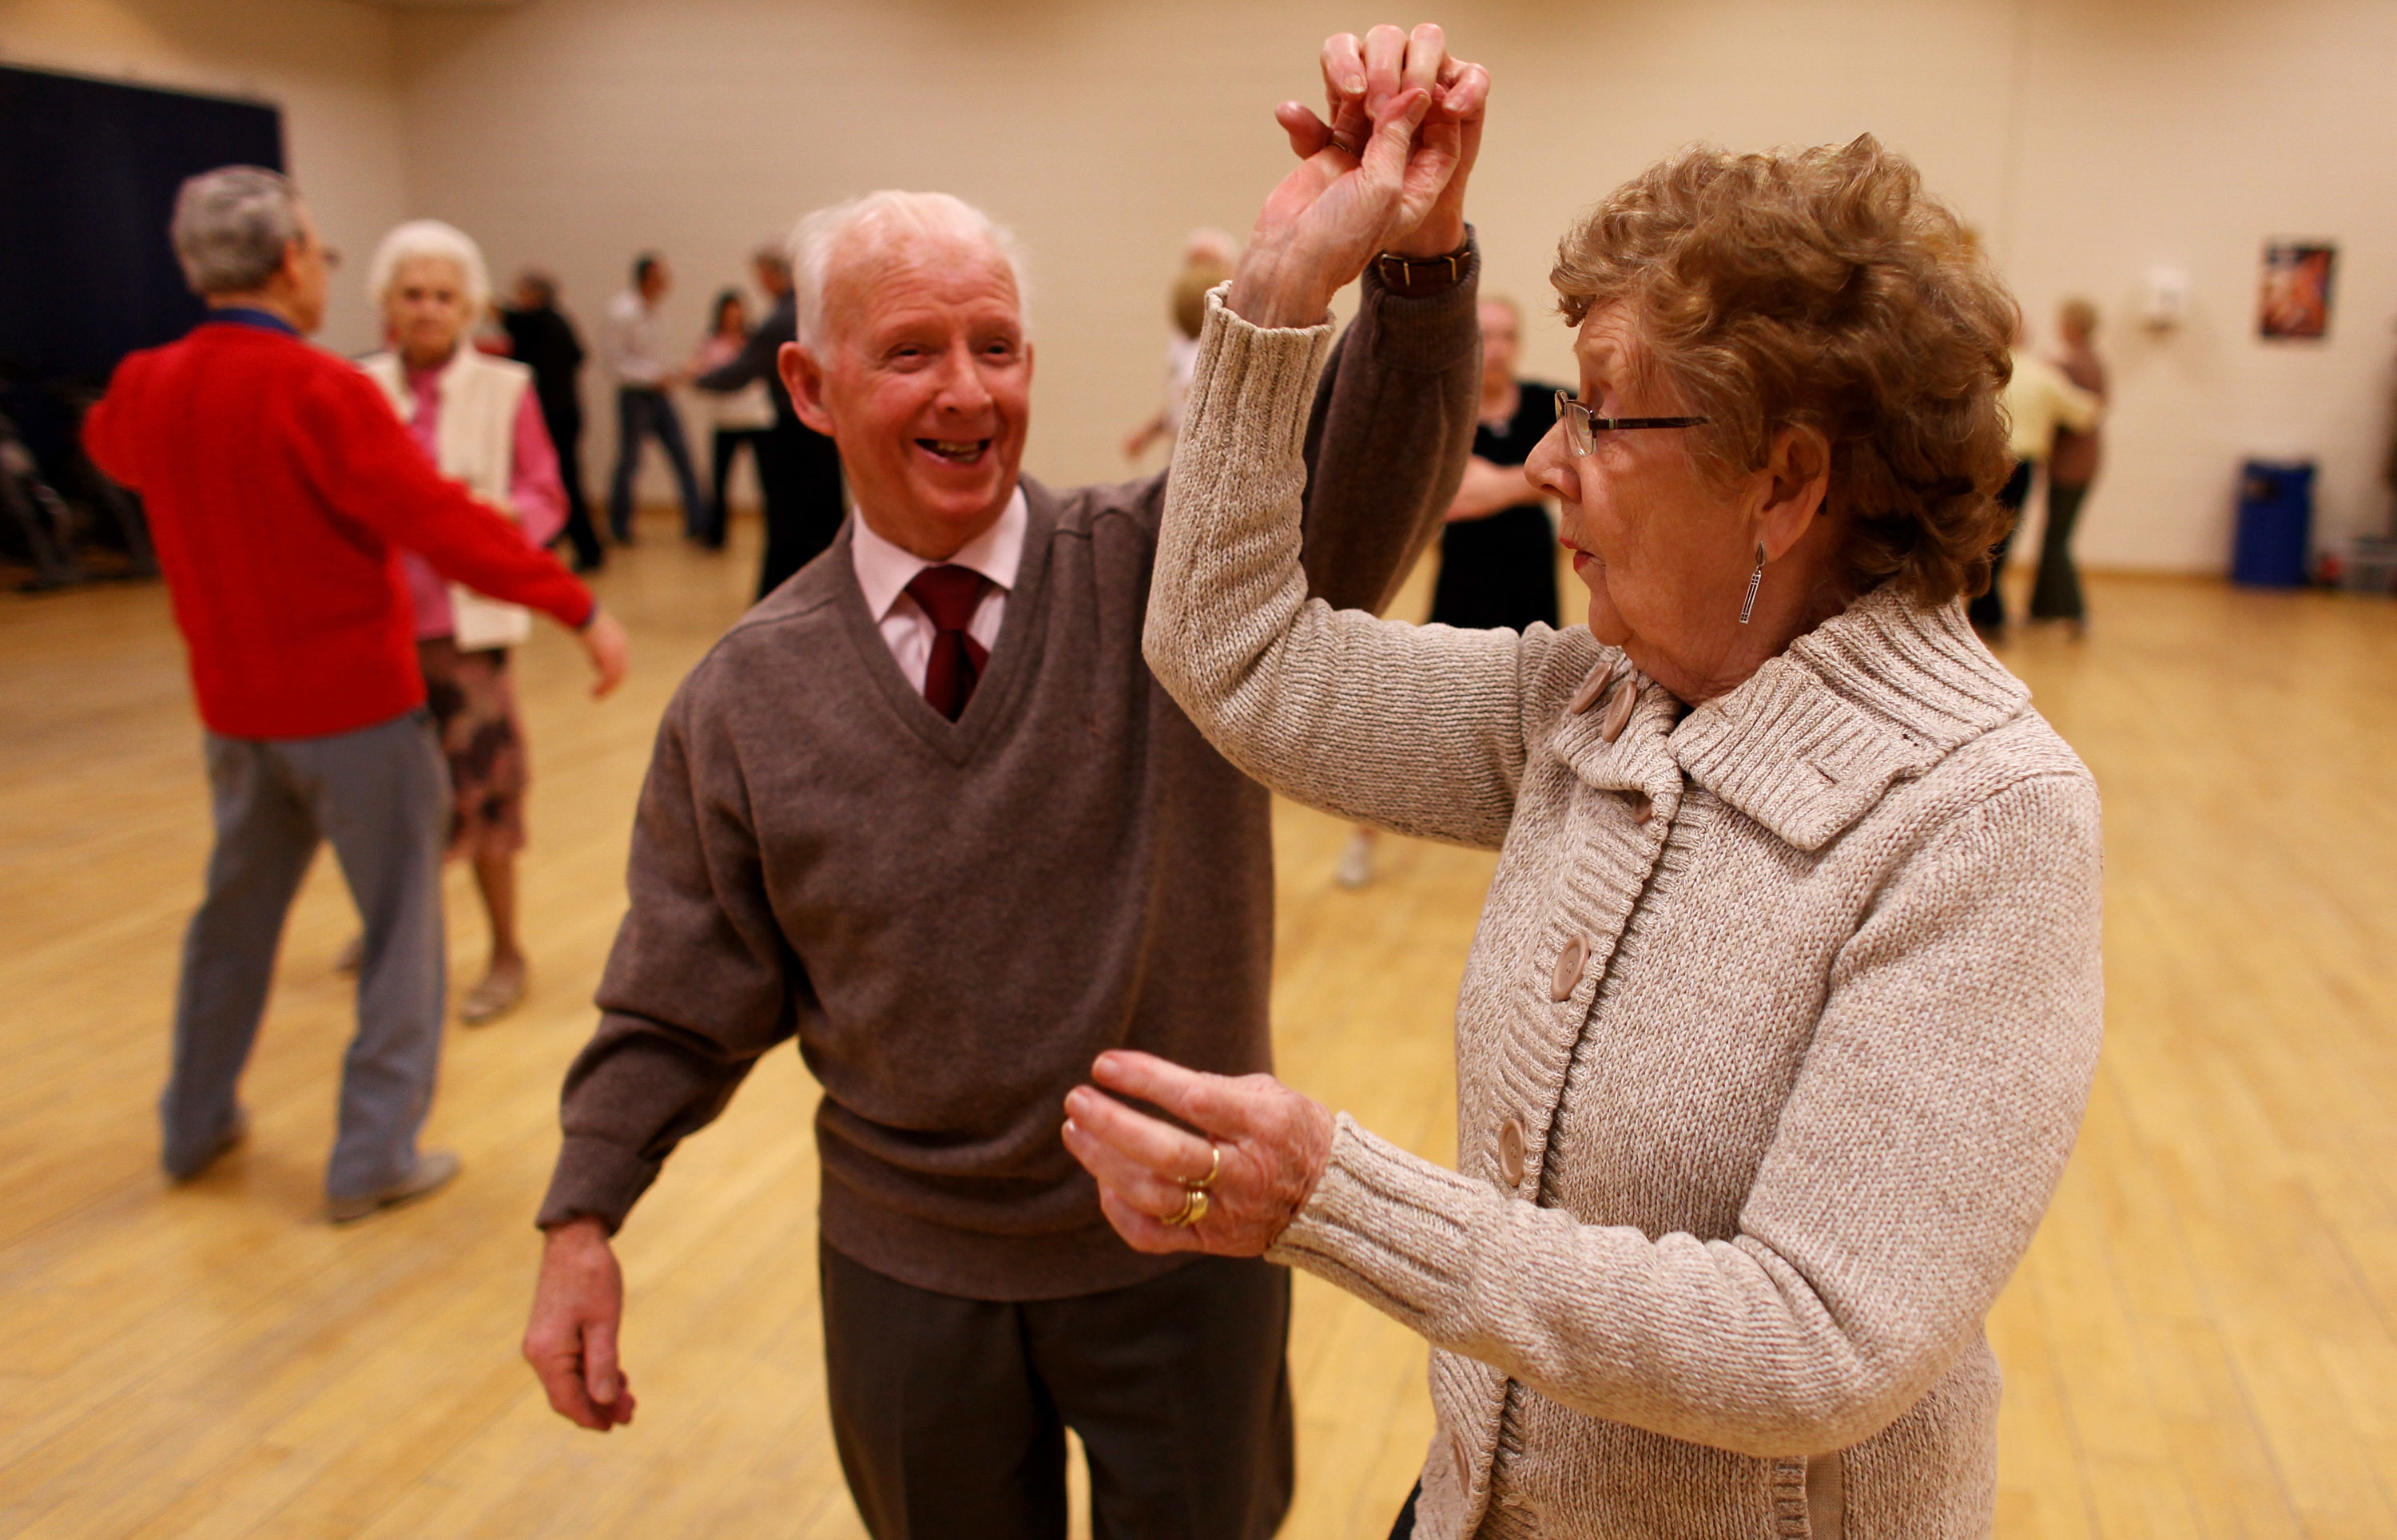 Senior citizens enjoy a tea dance at the Glasgow Club in the Gorbals (Jeff J Mitchell/Getty Images)